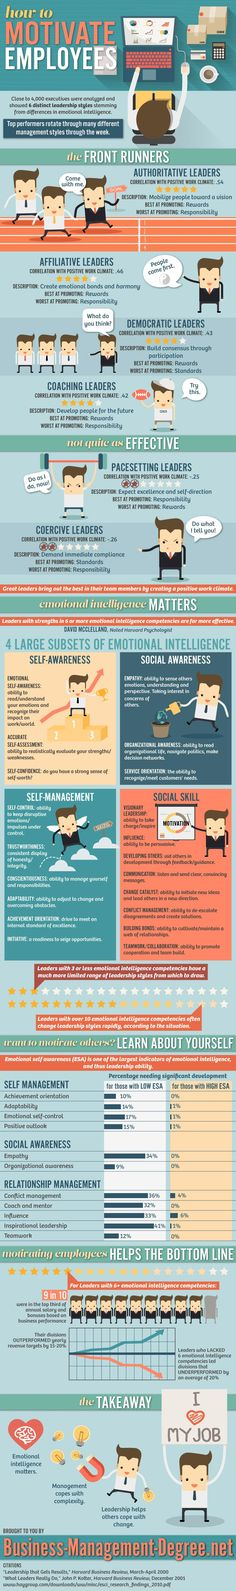 102 best Being a Good Project Manager images on Pinterest - construction manager resume